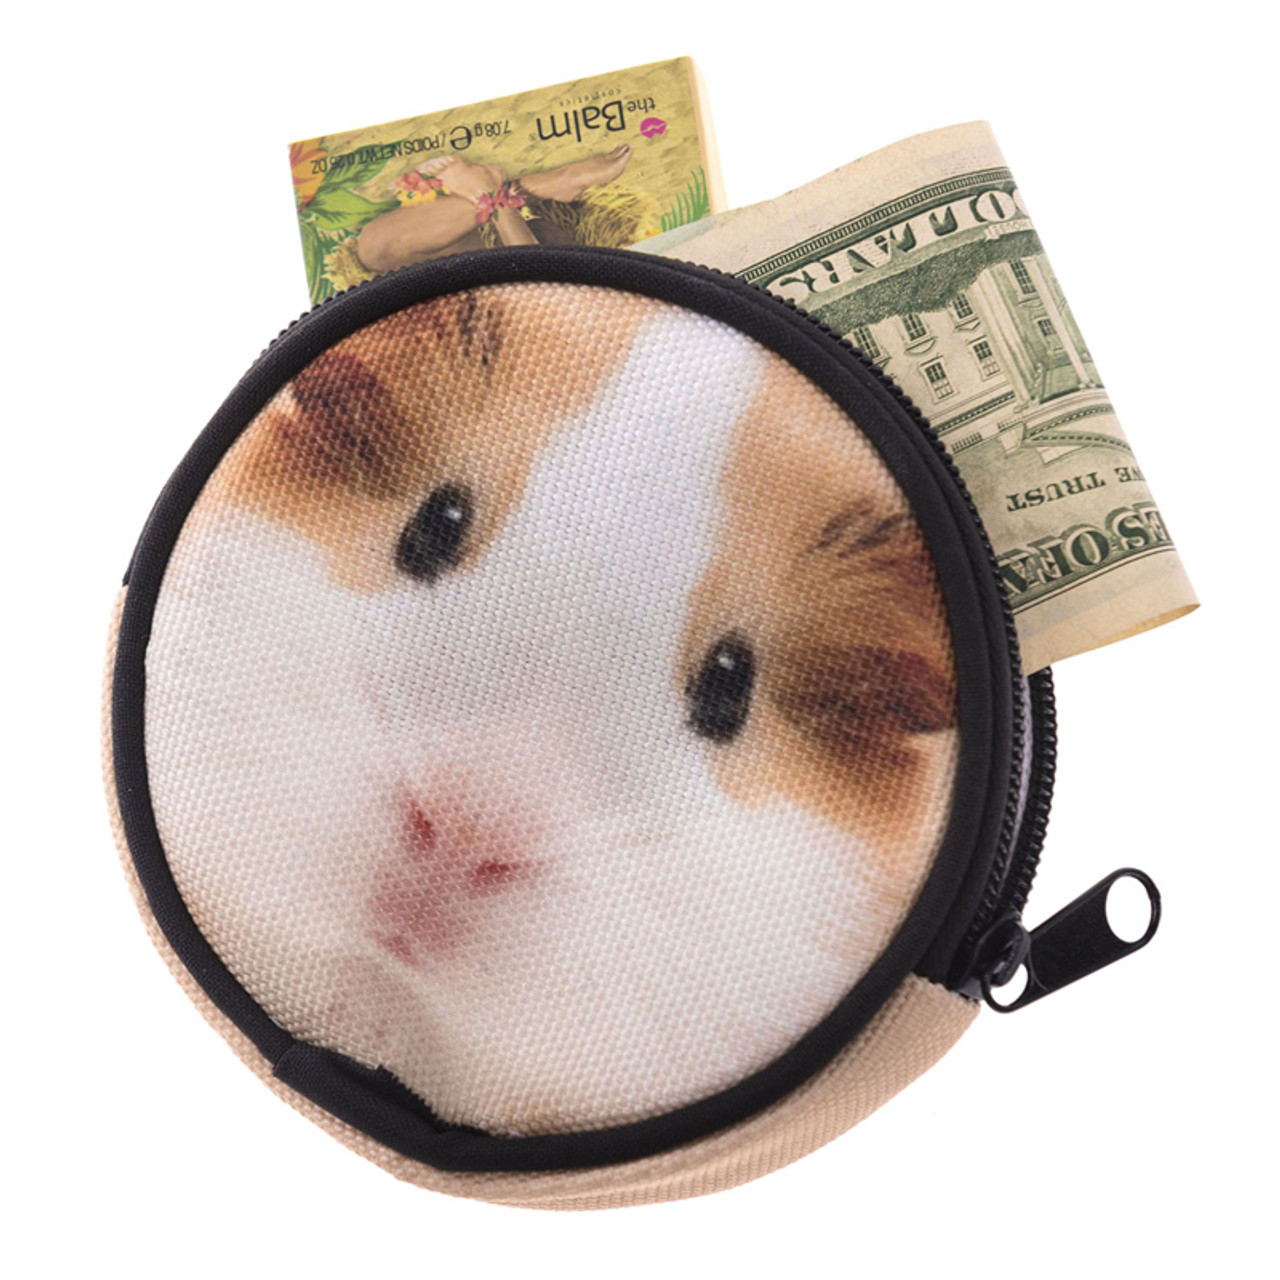 Guinea Pig Round Graphic Print Coin Purse - 18 Styles with cash and cards sticking out